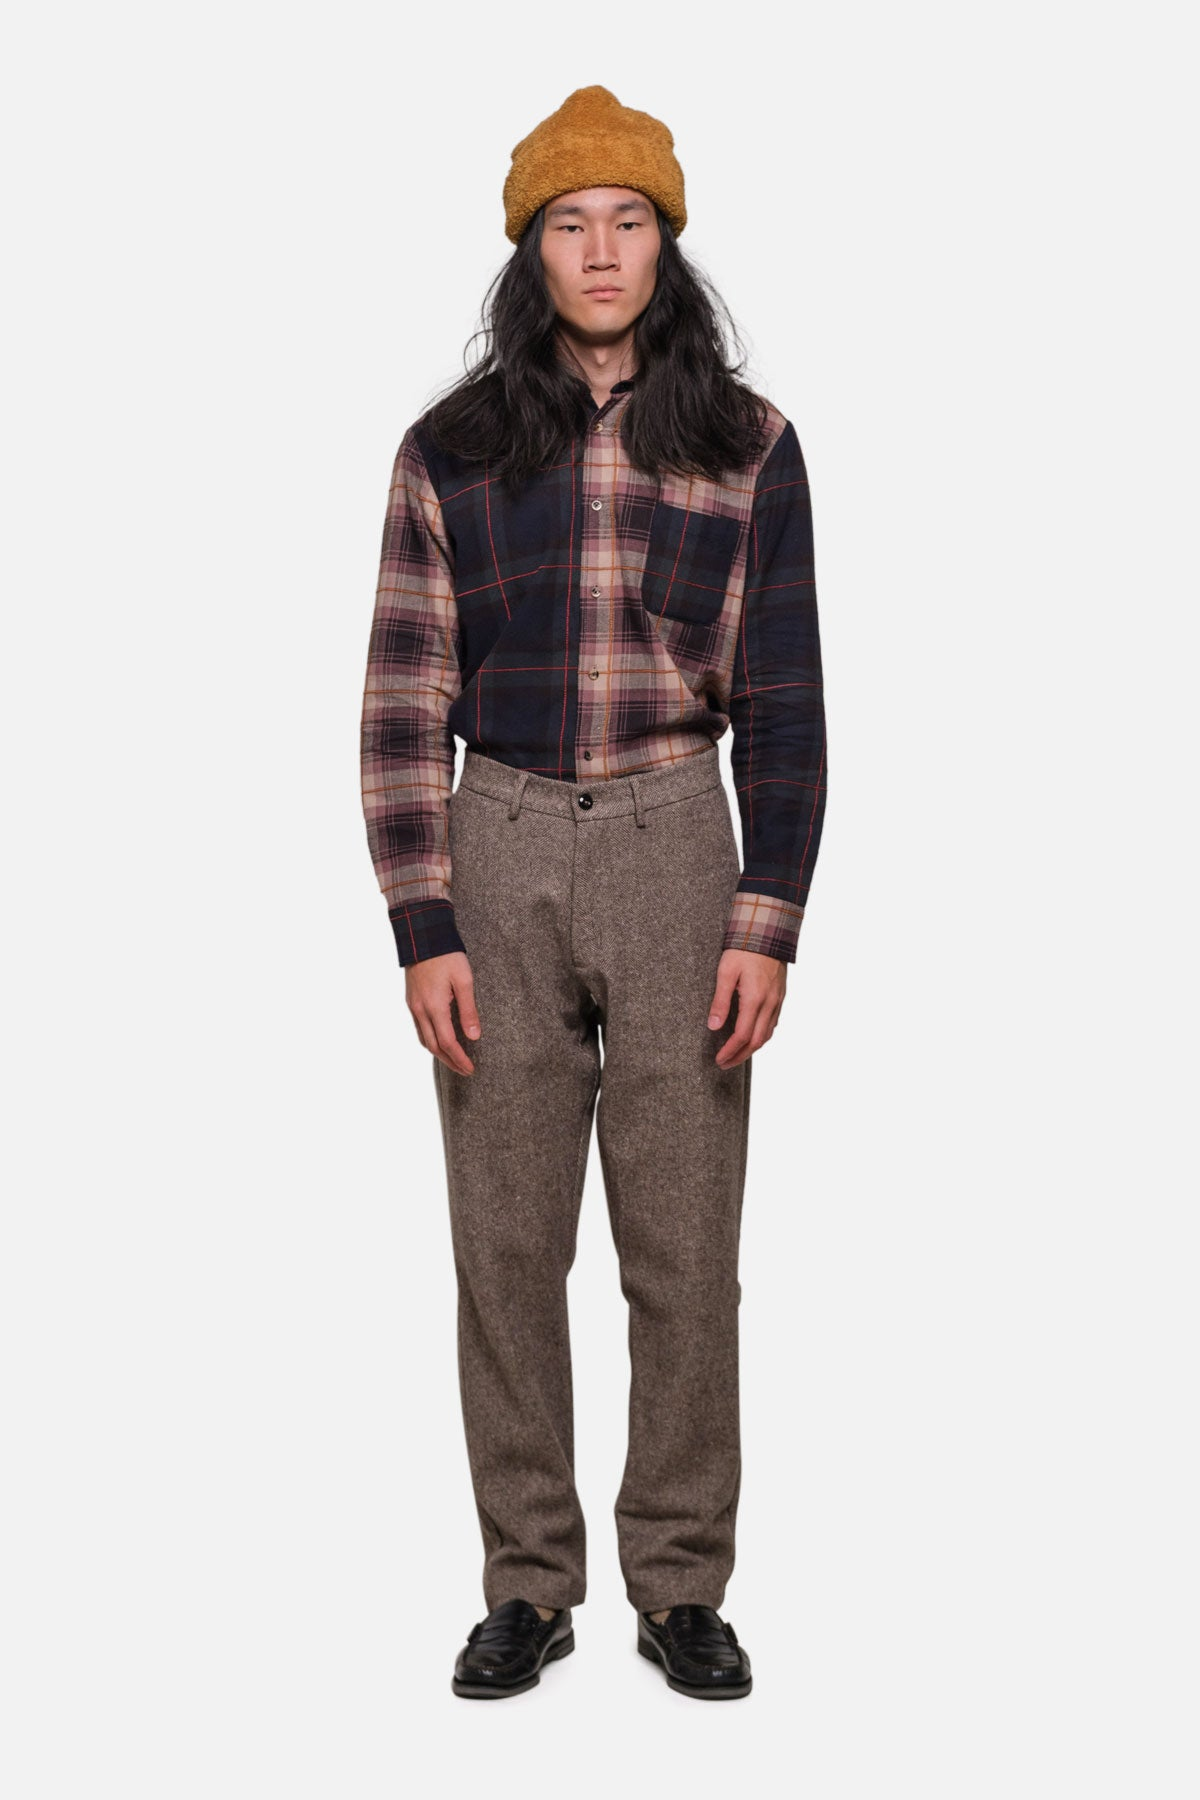 BRIGGS TROUSER IN MOCHA HERRINGBONE TWEED - Fortune Goods